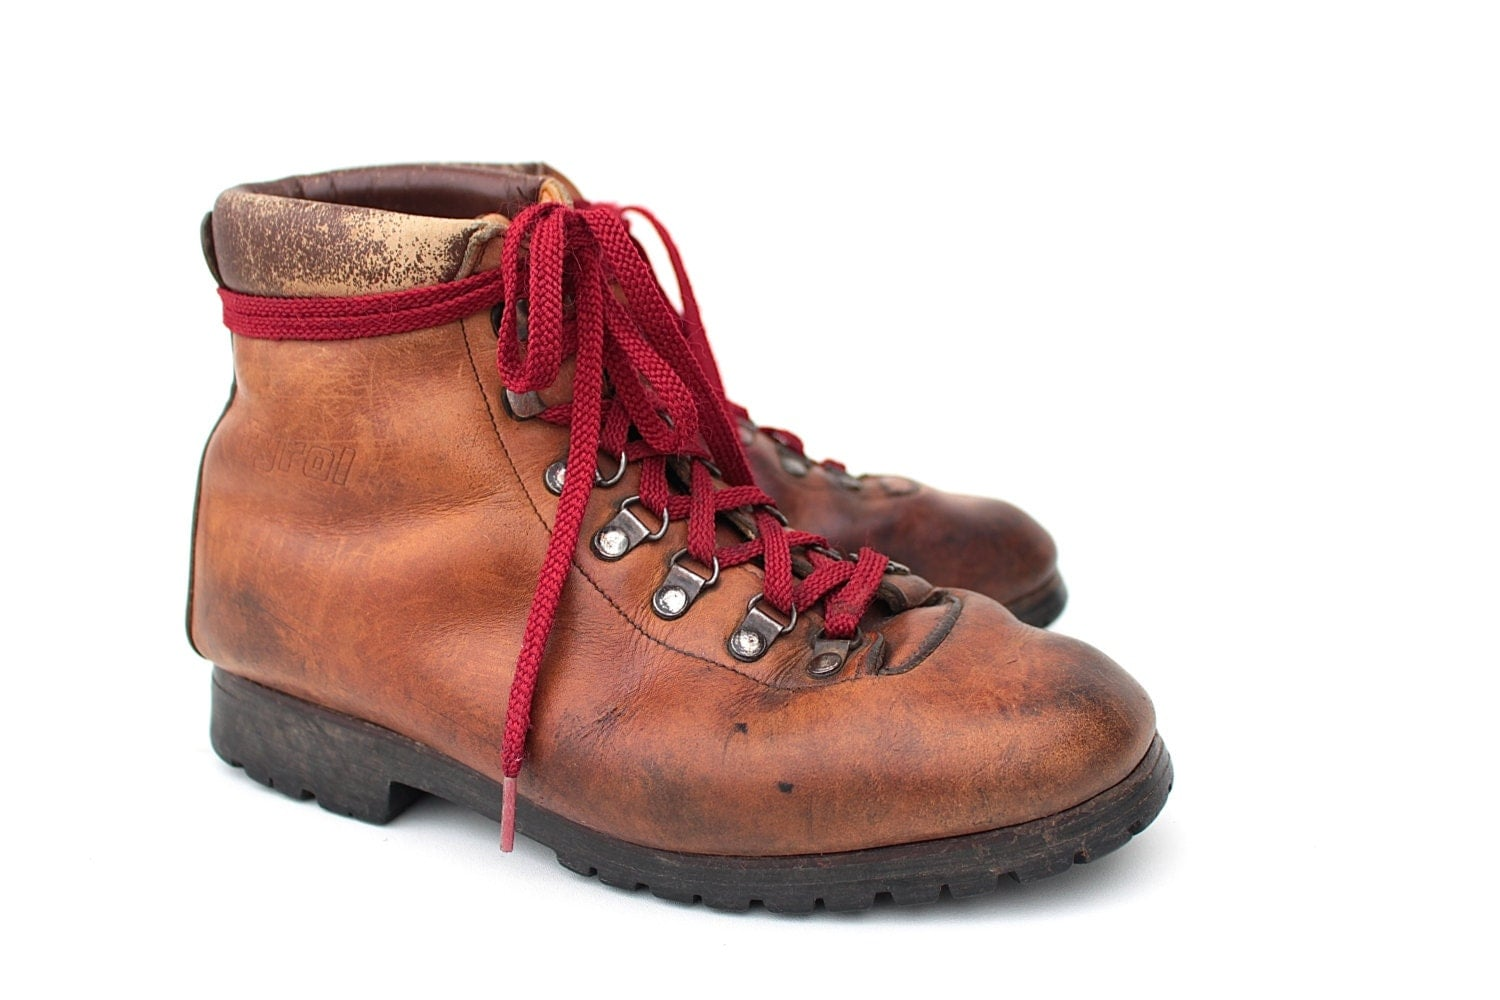 vintage leather hiking boots 70s 80s austrian by